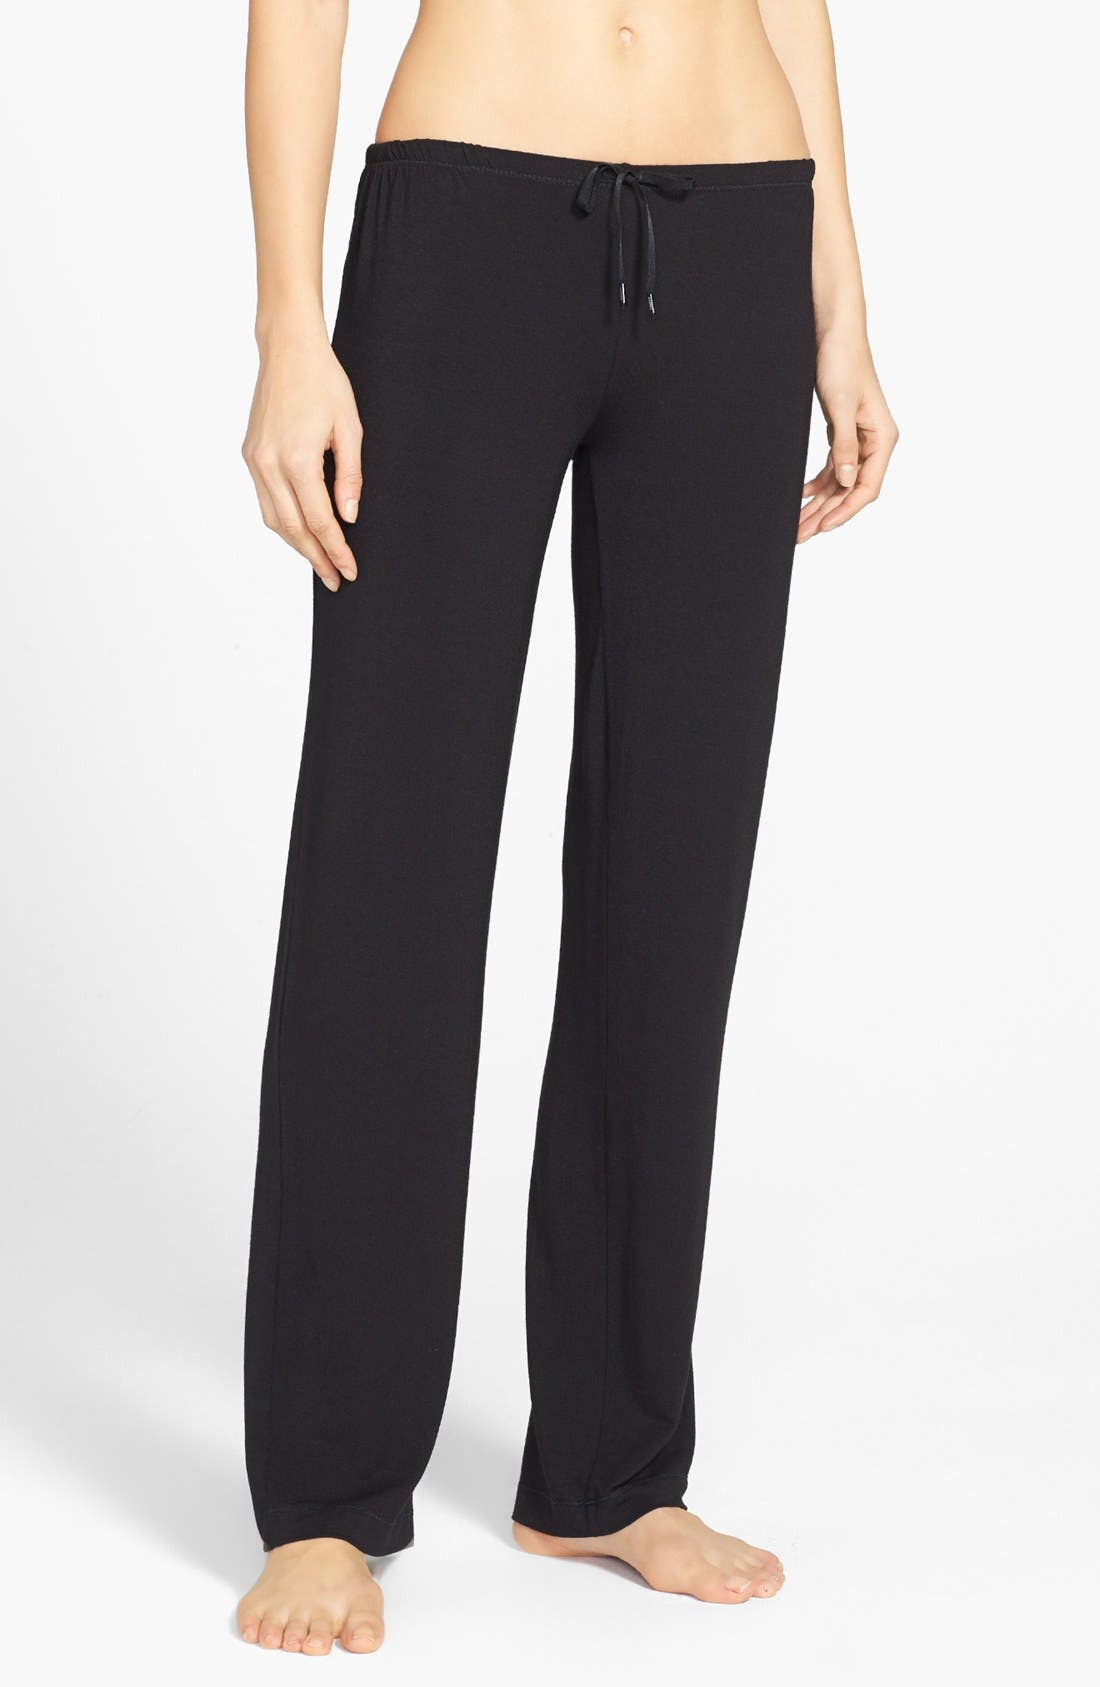 'City Essentials' Pants,                             Main thumbnail 1, color,                             Black